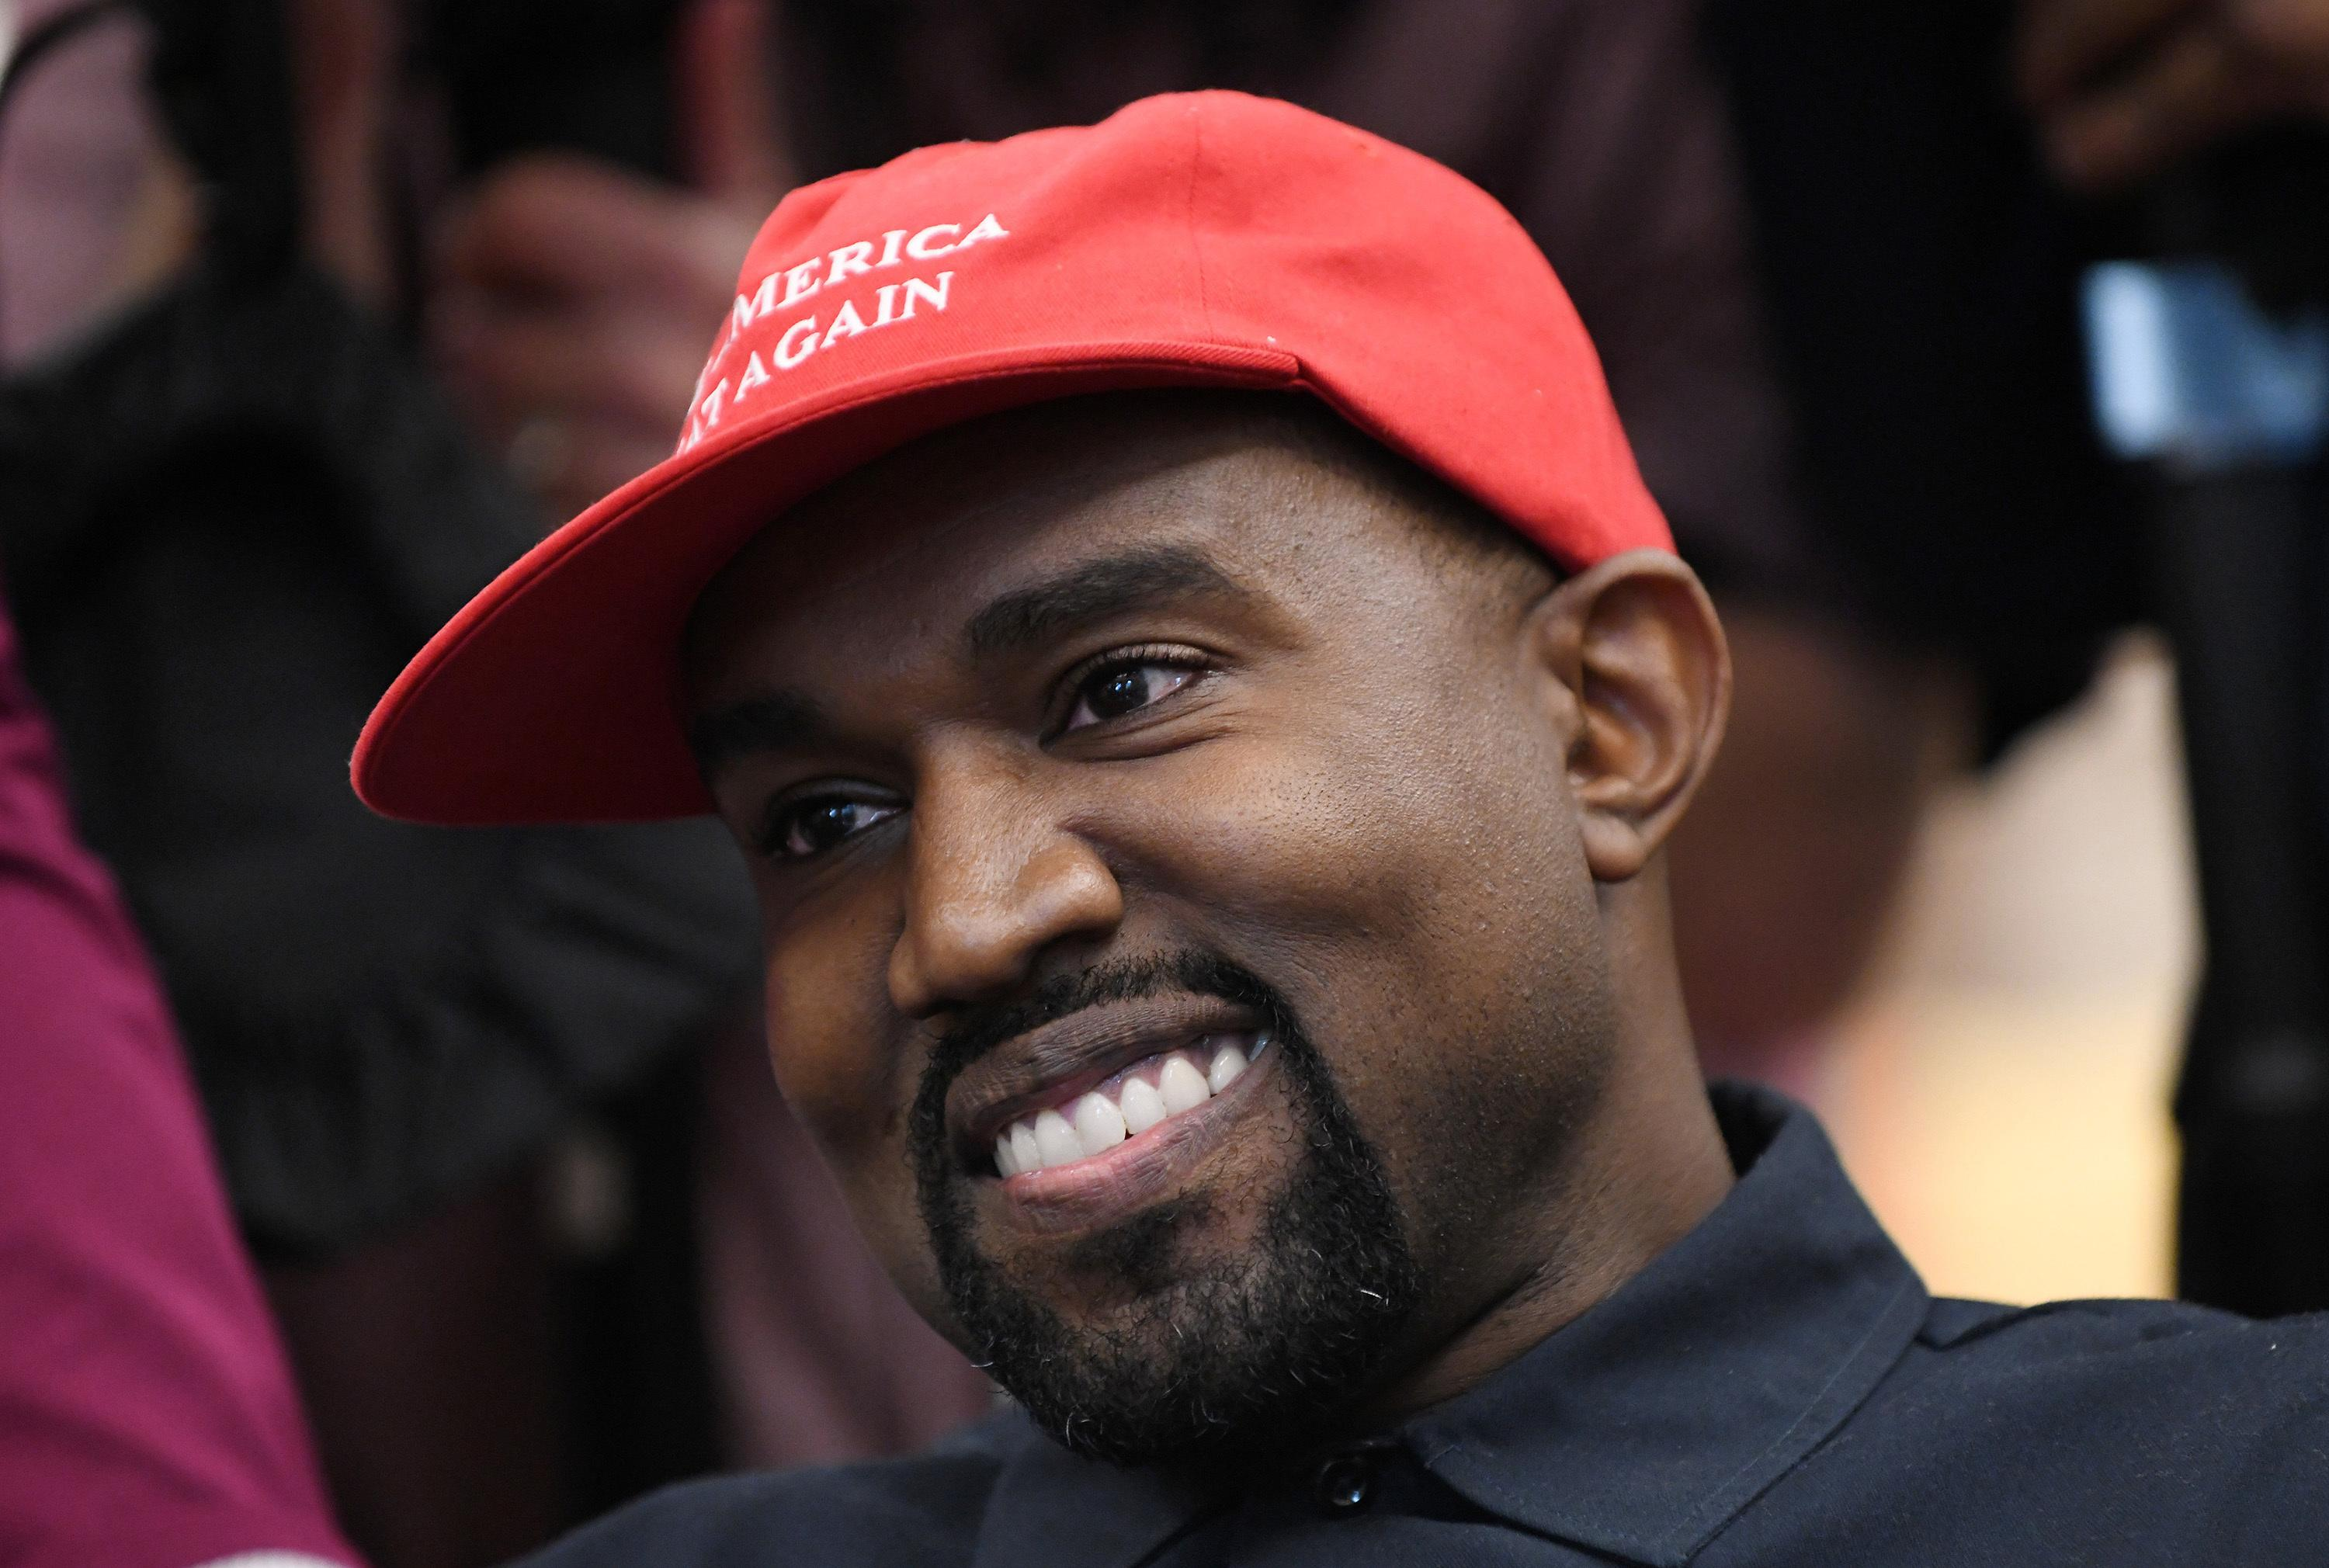 Kanye West takes first official steps towards running for U.S. president